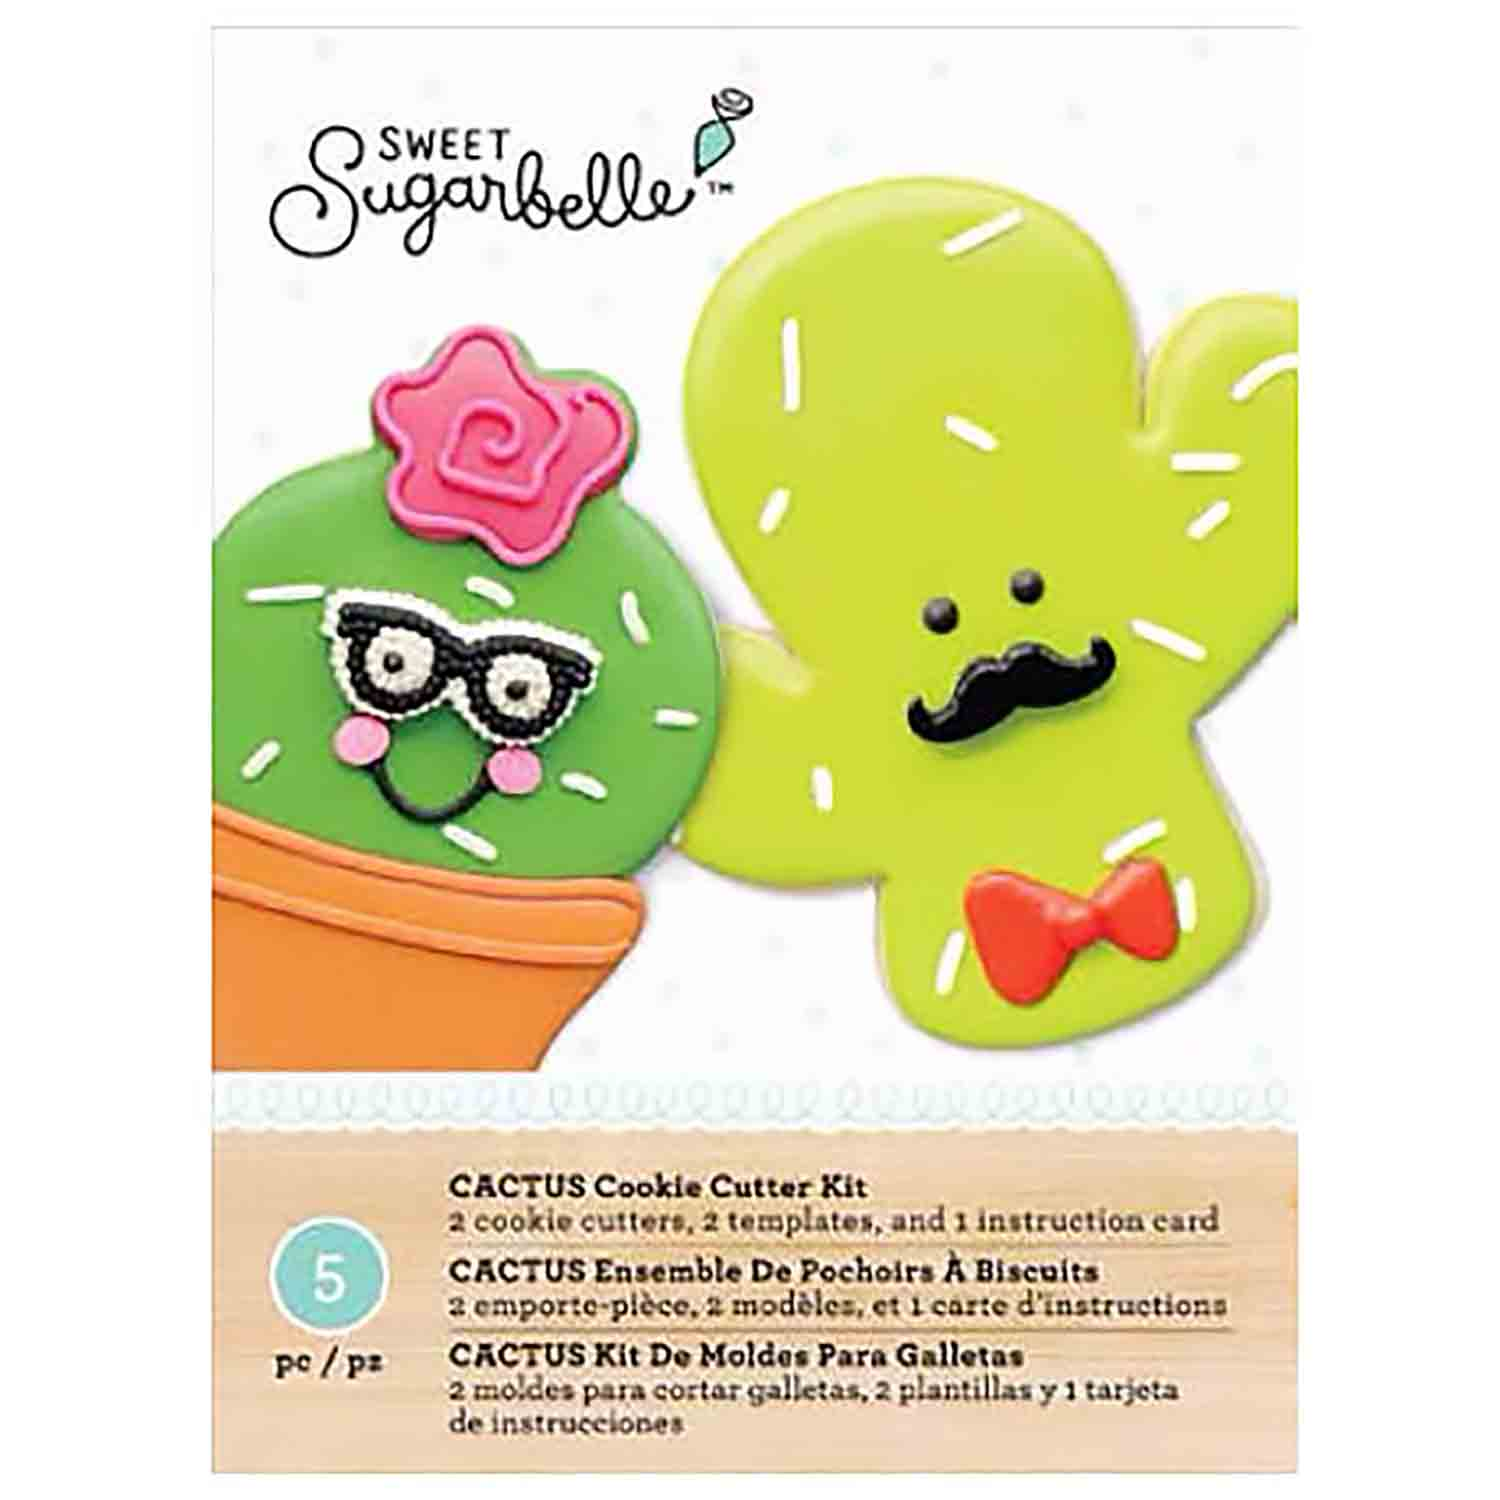 Cactus Cookie Cutter Stencil Set by Sweet Sugarbelle